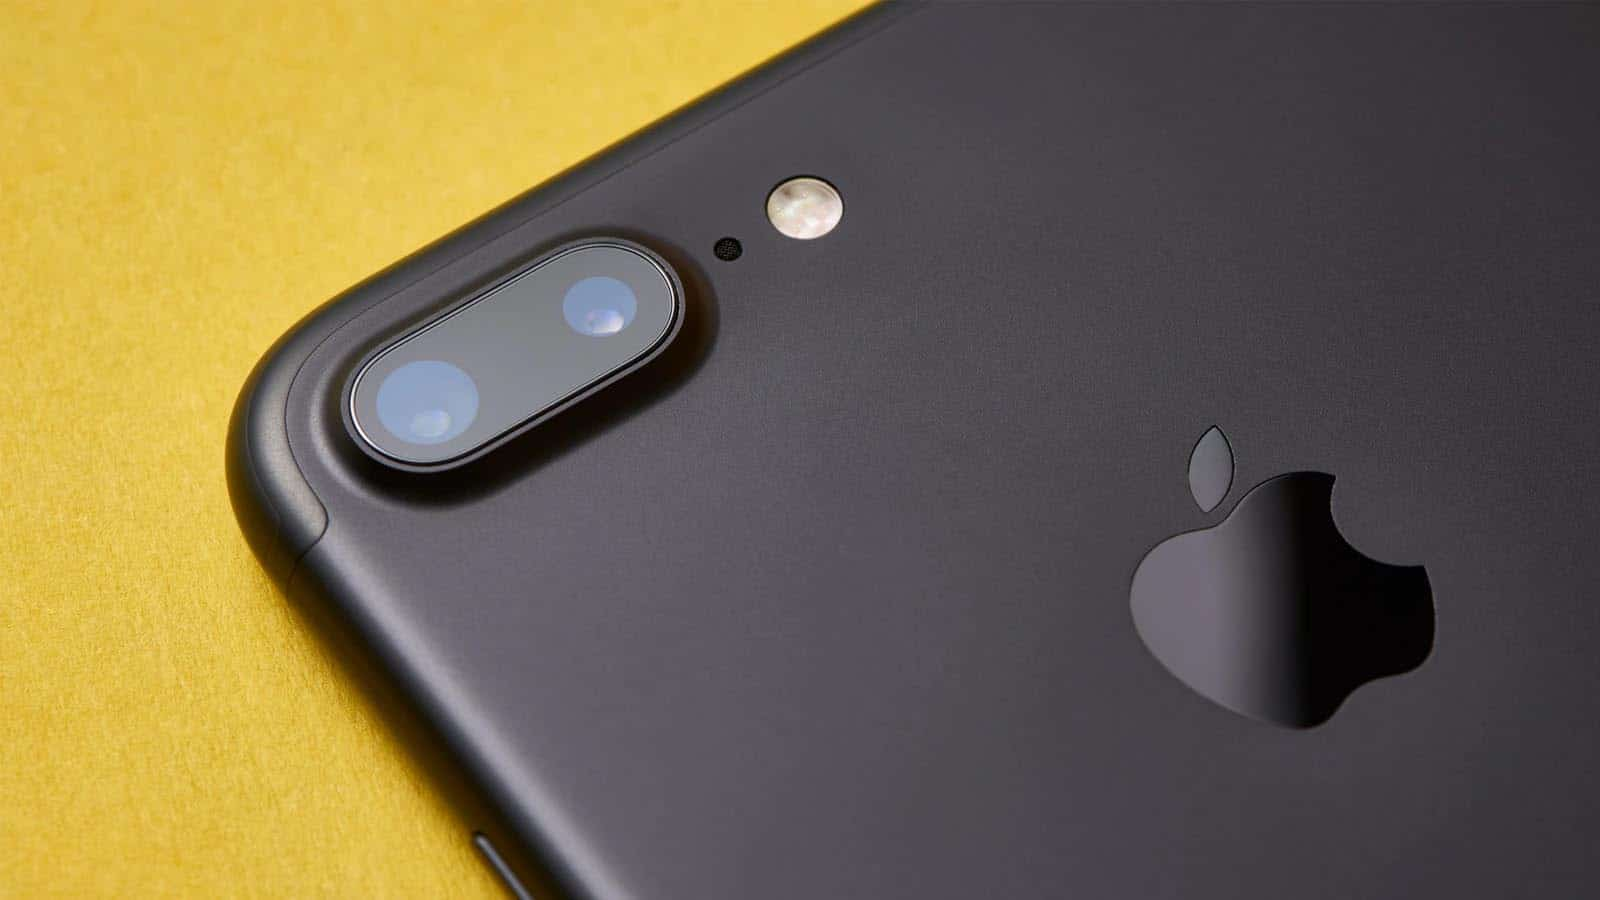 apple iphone 7 on yellow background